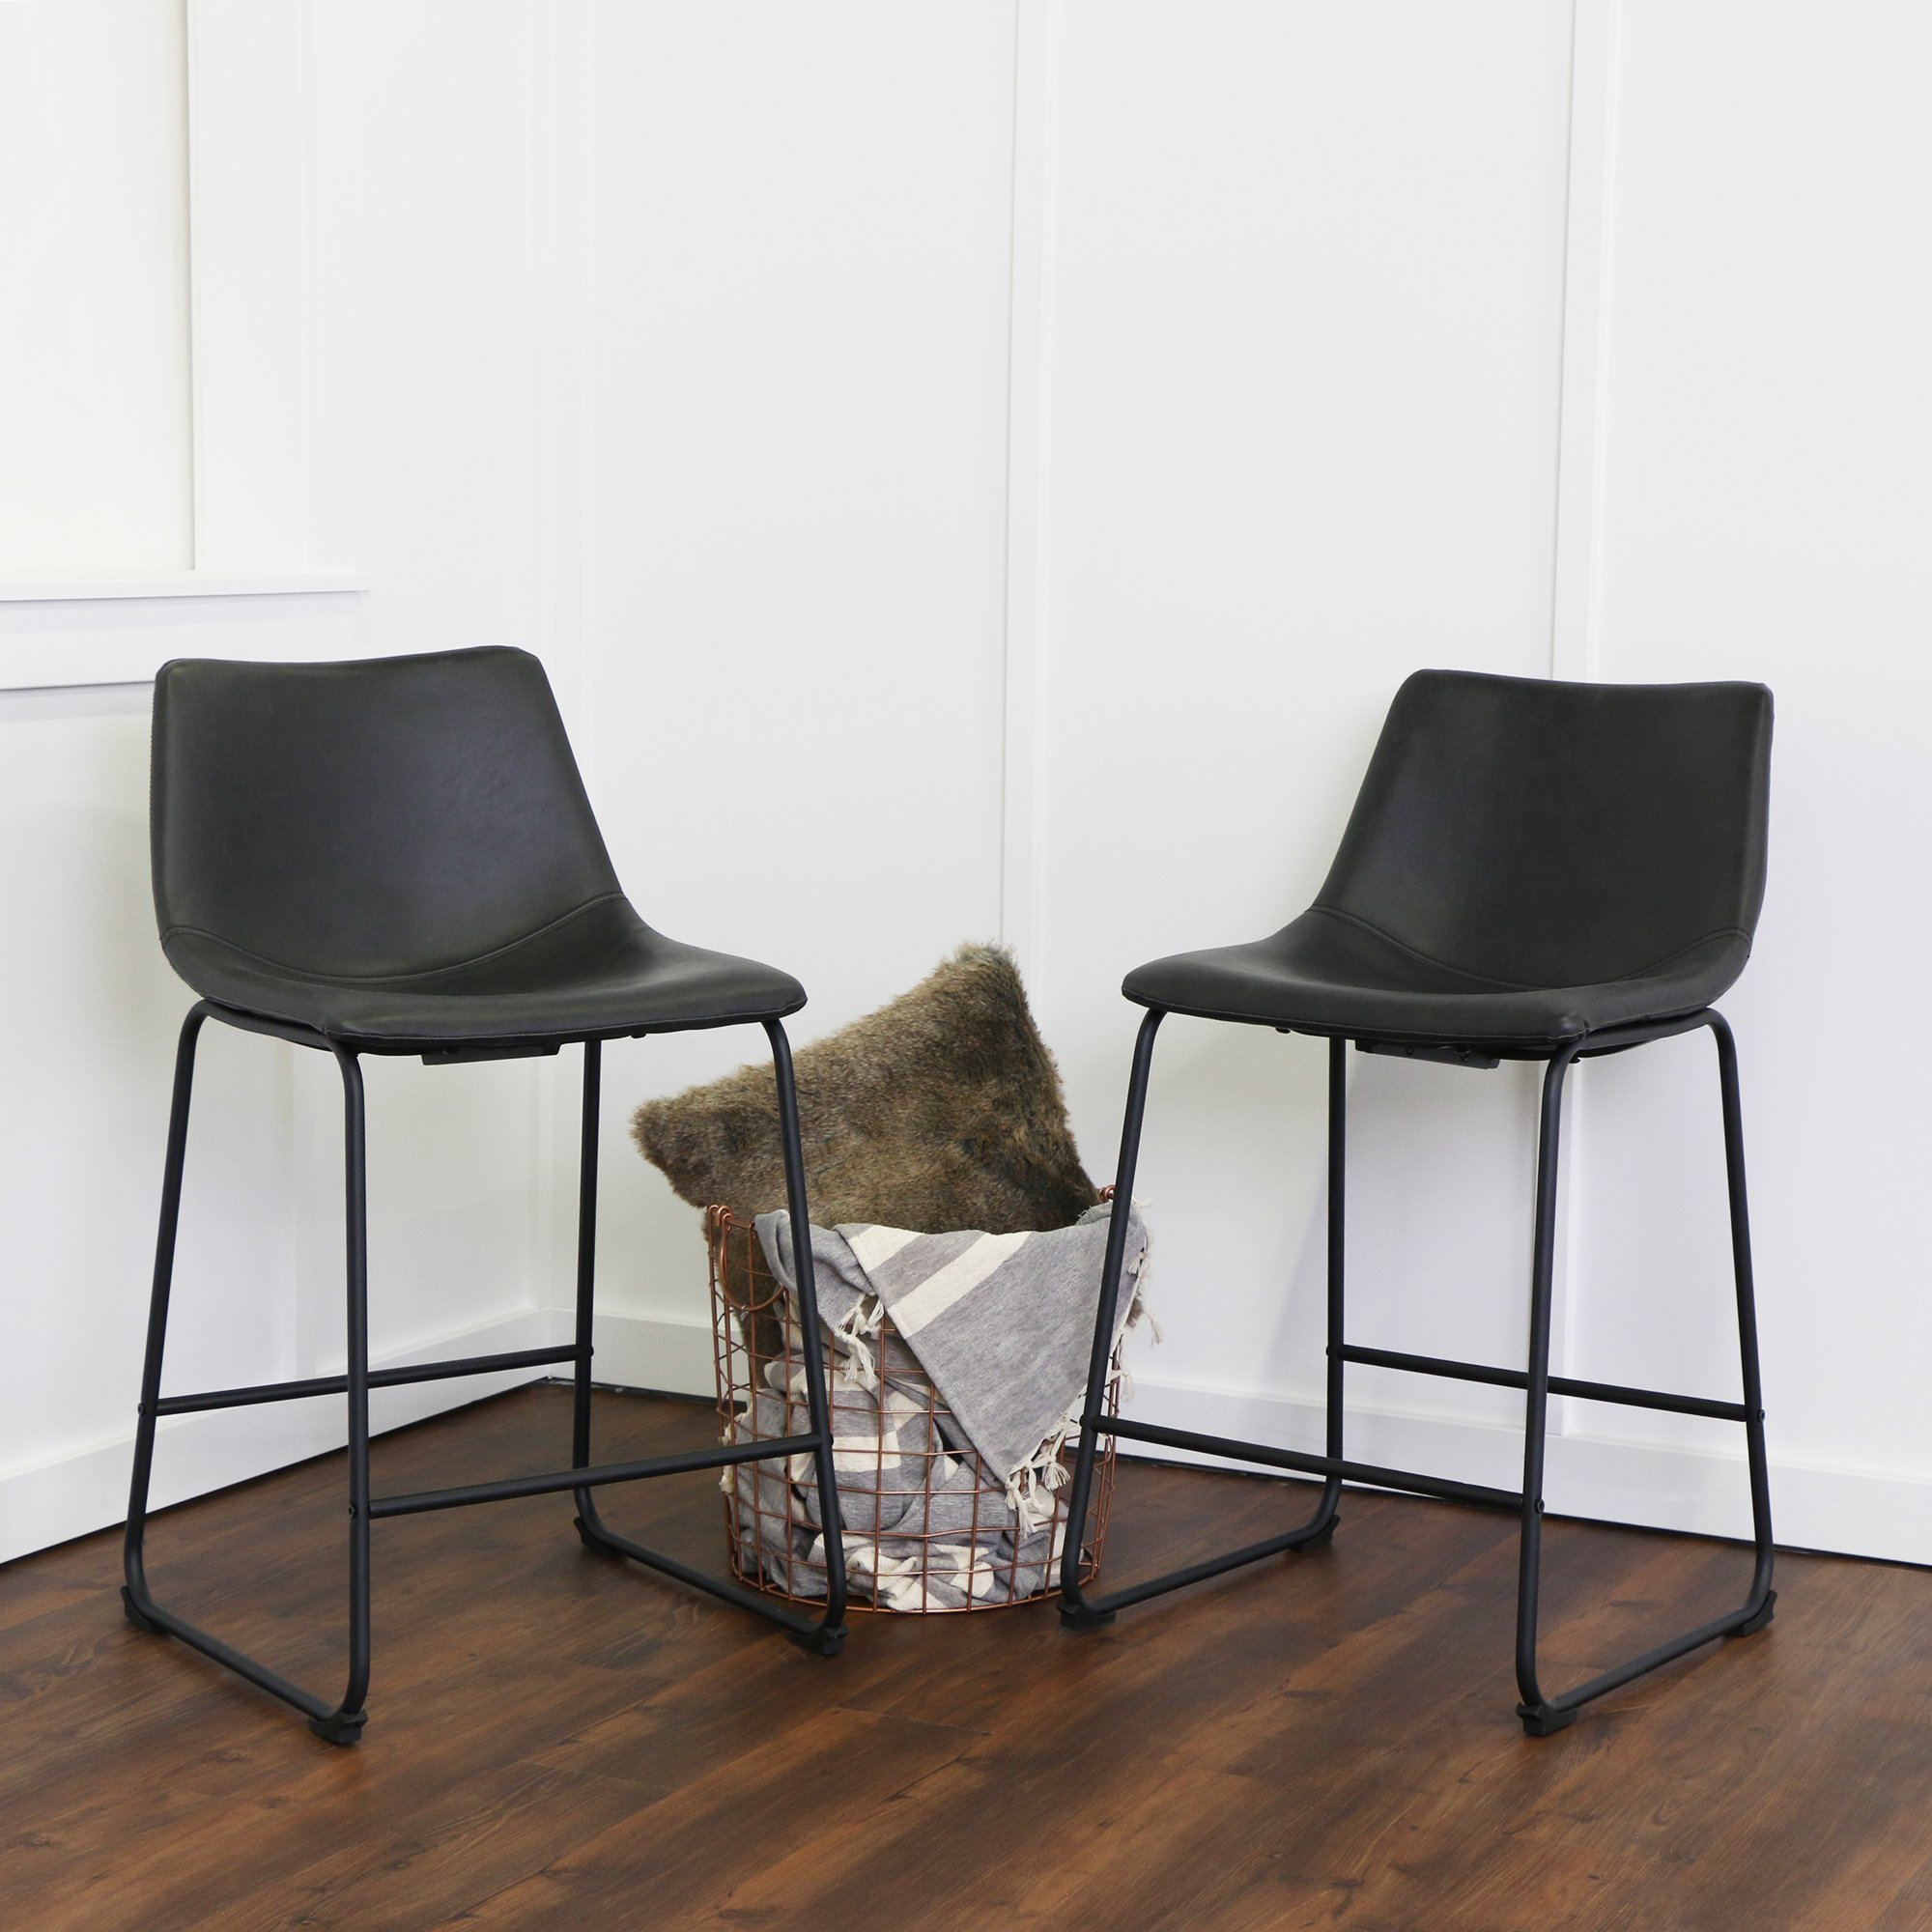 WE Furniture Black Faux Leather Counter Chairs, Set of 2 by WE Furniture